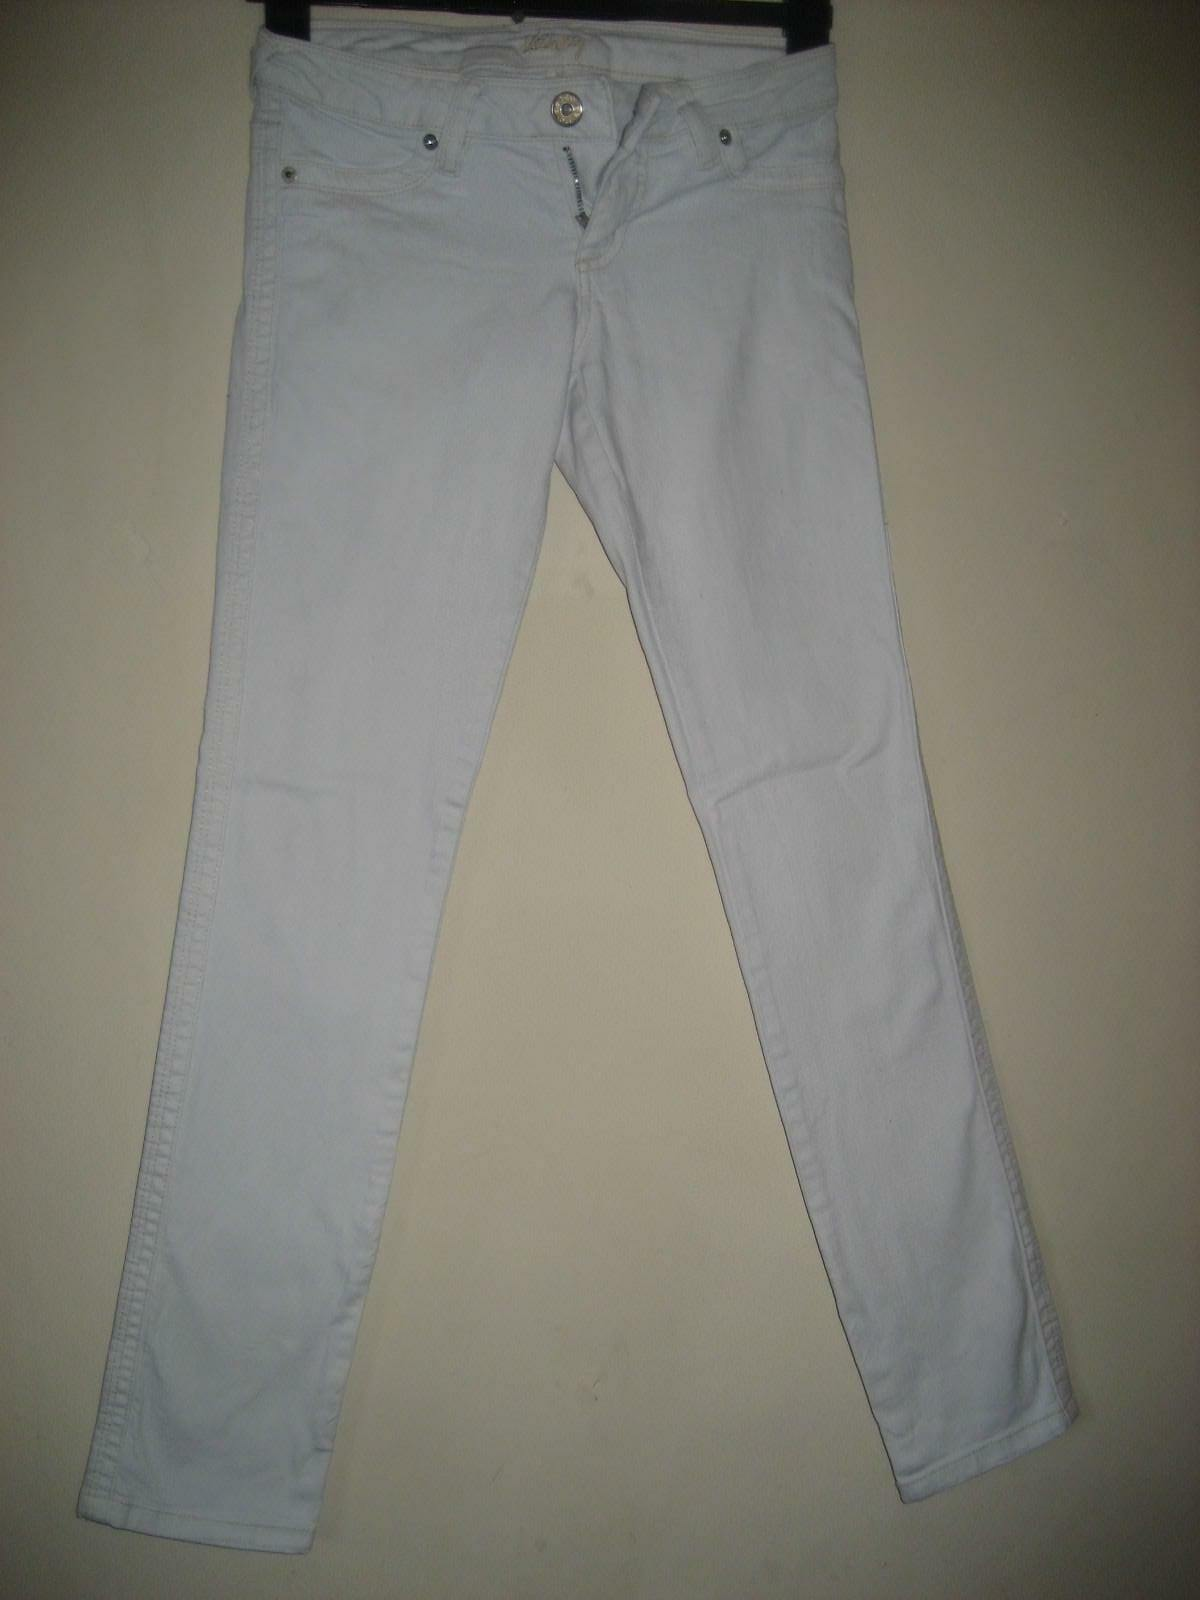 BT3) WOMENS WHITE NEW LOOK SKINNY JEANS SIZE 8 INCHES LEG 29  ZIP FLY